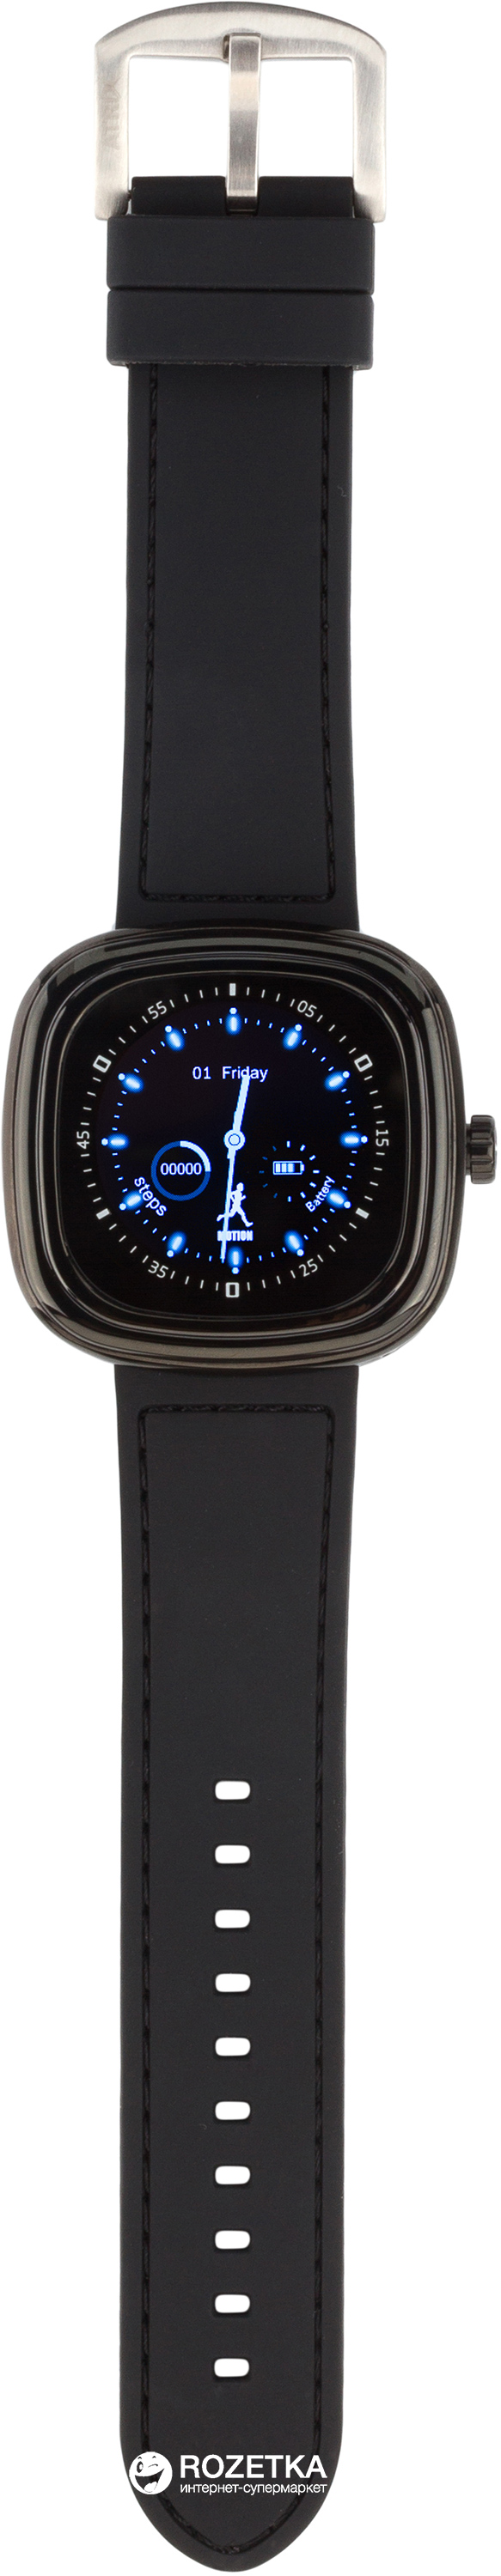 Atrix Smart Watch E10 Black 7838b70510bf2